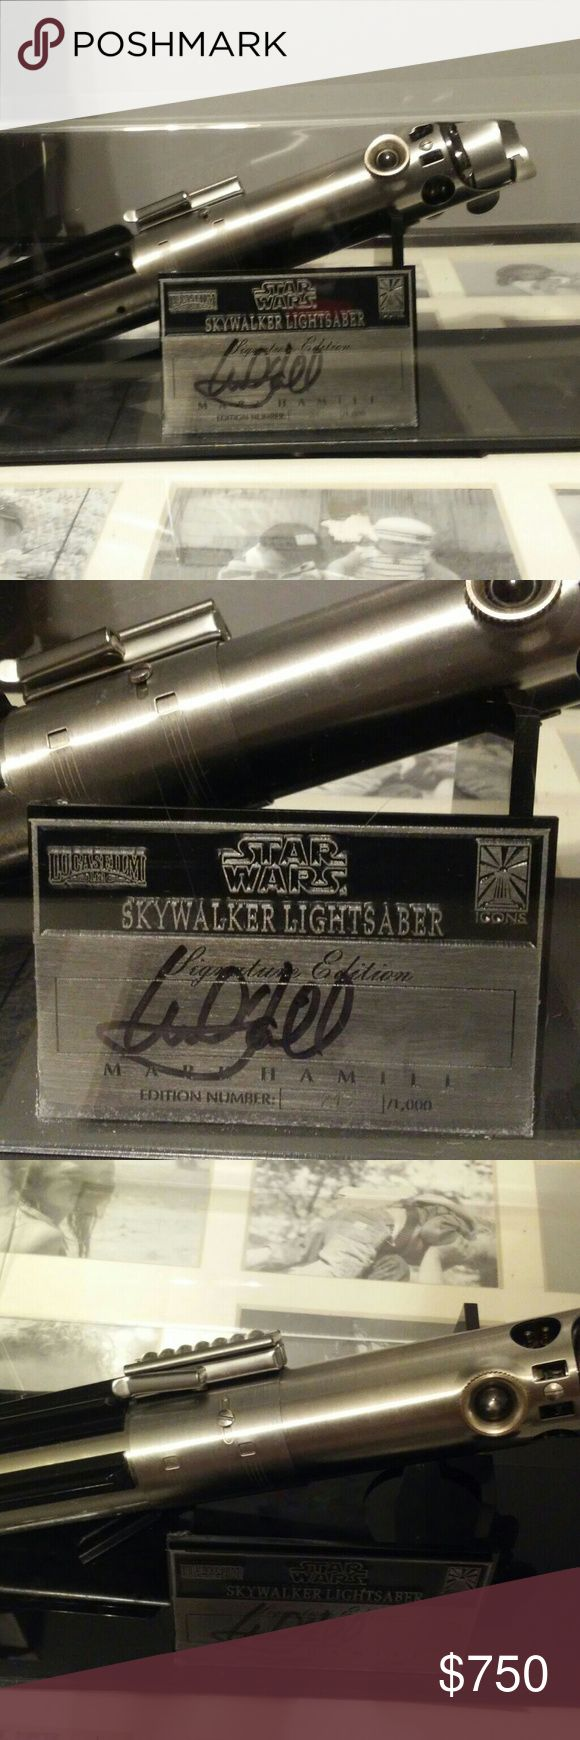 Skywalker lightsaber edtition #213 Icons StarWars Skywalker Lightsaber  This is the Signature edition where they only release 1,000.  Name plate is actually signed by Mark Hamill himself.  You hardly ever see these for sale. Do not have the box or COA. See pictures for condition which in my opinion is great.  Number 213 signature edition..it does have some pieces broken on the back they are two black pieces Star Wars Other